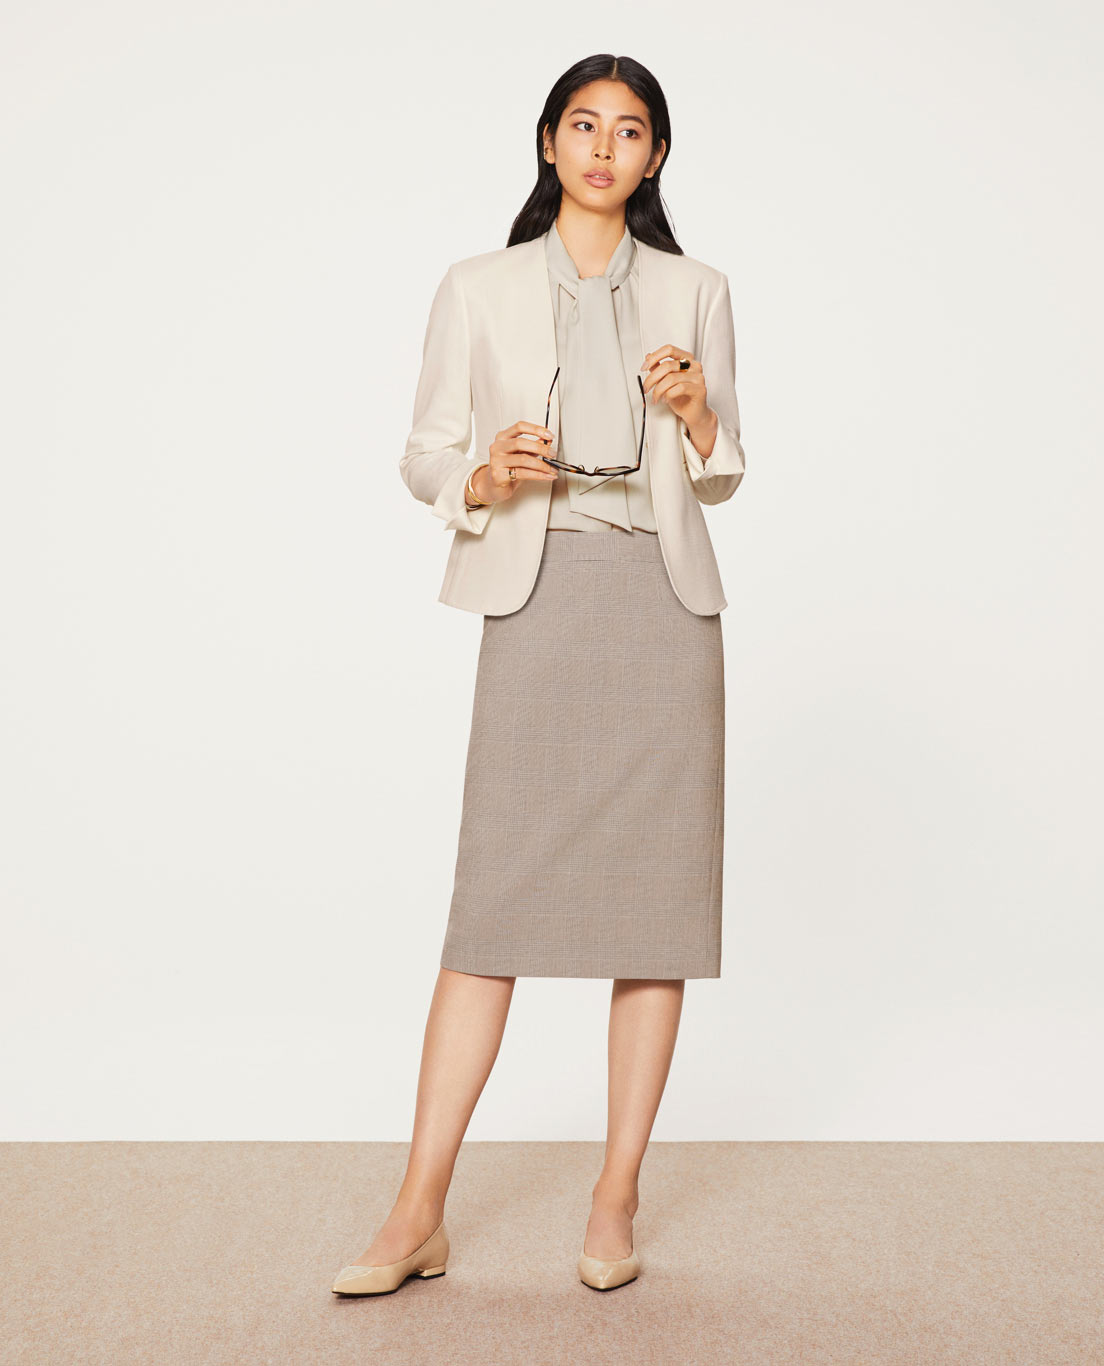 COMFORT NO COLLAR JACKET                      : 5454 / WASHABLE / STRETCH / UV / DRY / COOL / WHITE, TIGHT SKIRT: 5443 / WASHABLE / TR2WAYSTRETCH / BROWNCHECK